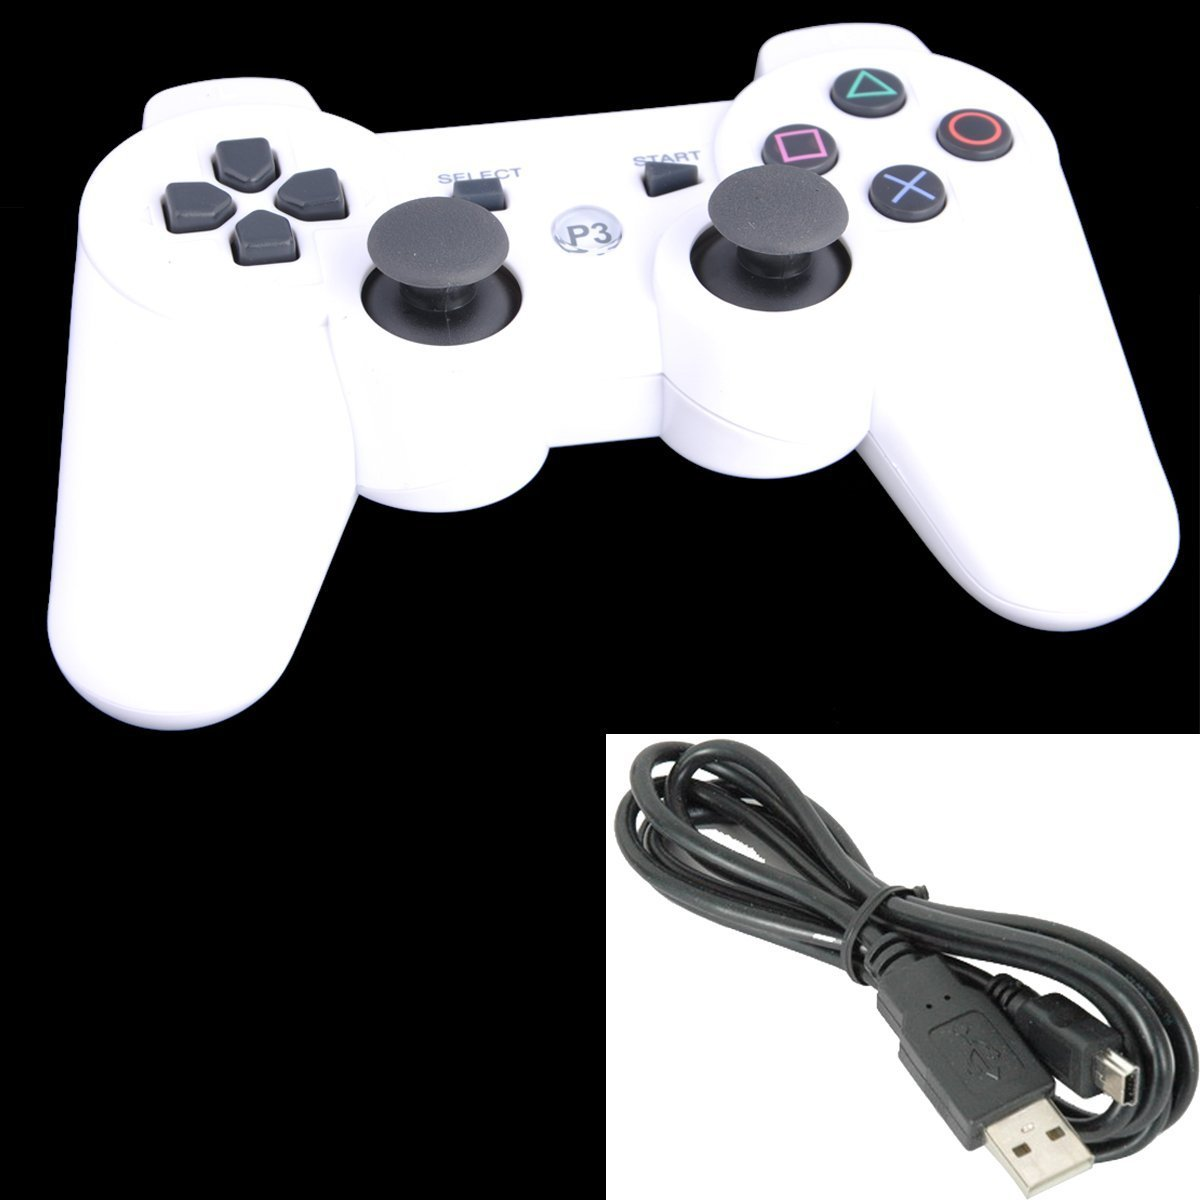 Elant Bluetooth Wireless Controller For Sony Playstation 3 Ps3 6 Axis Gamepad Joypad Dualshock with Charging Cable 11 Colors Available (white) surprise wireless gamepad for wii remote controller for nintendo for wii for w ii u 5 colors for choice